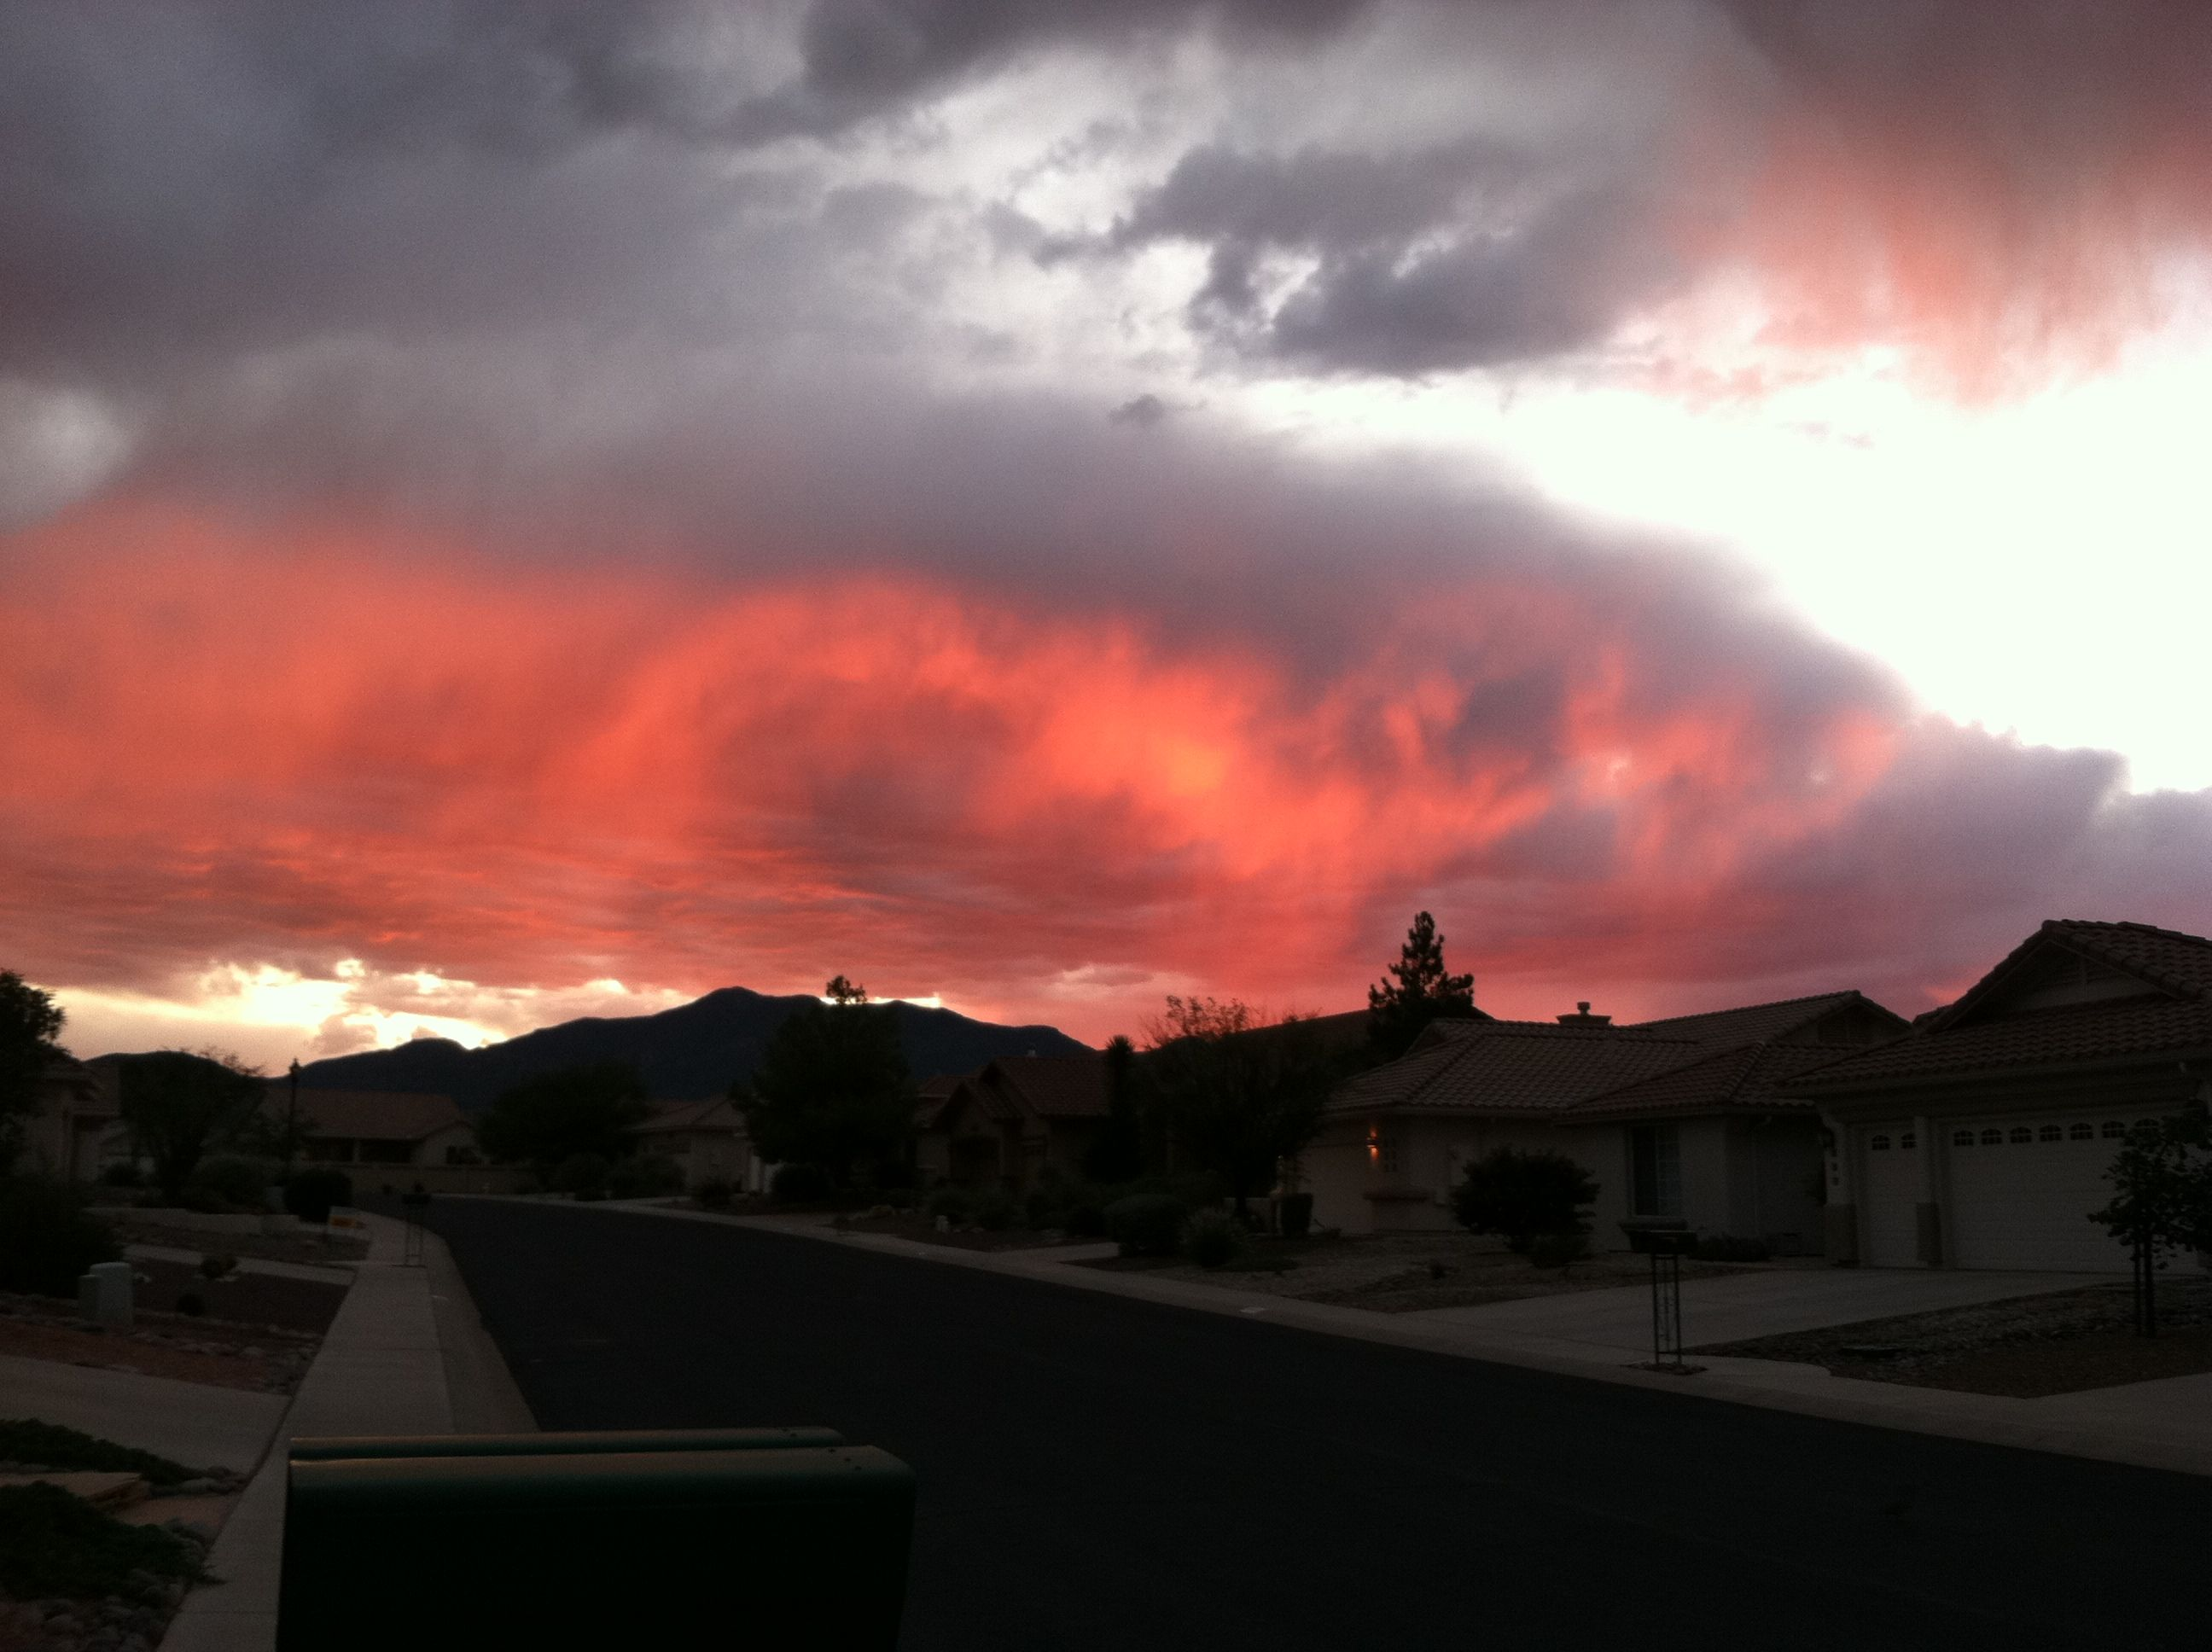 This was taken in 2011 in our neighborhood. No fear. No fire. This is just a glorious sunset.